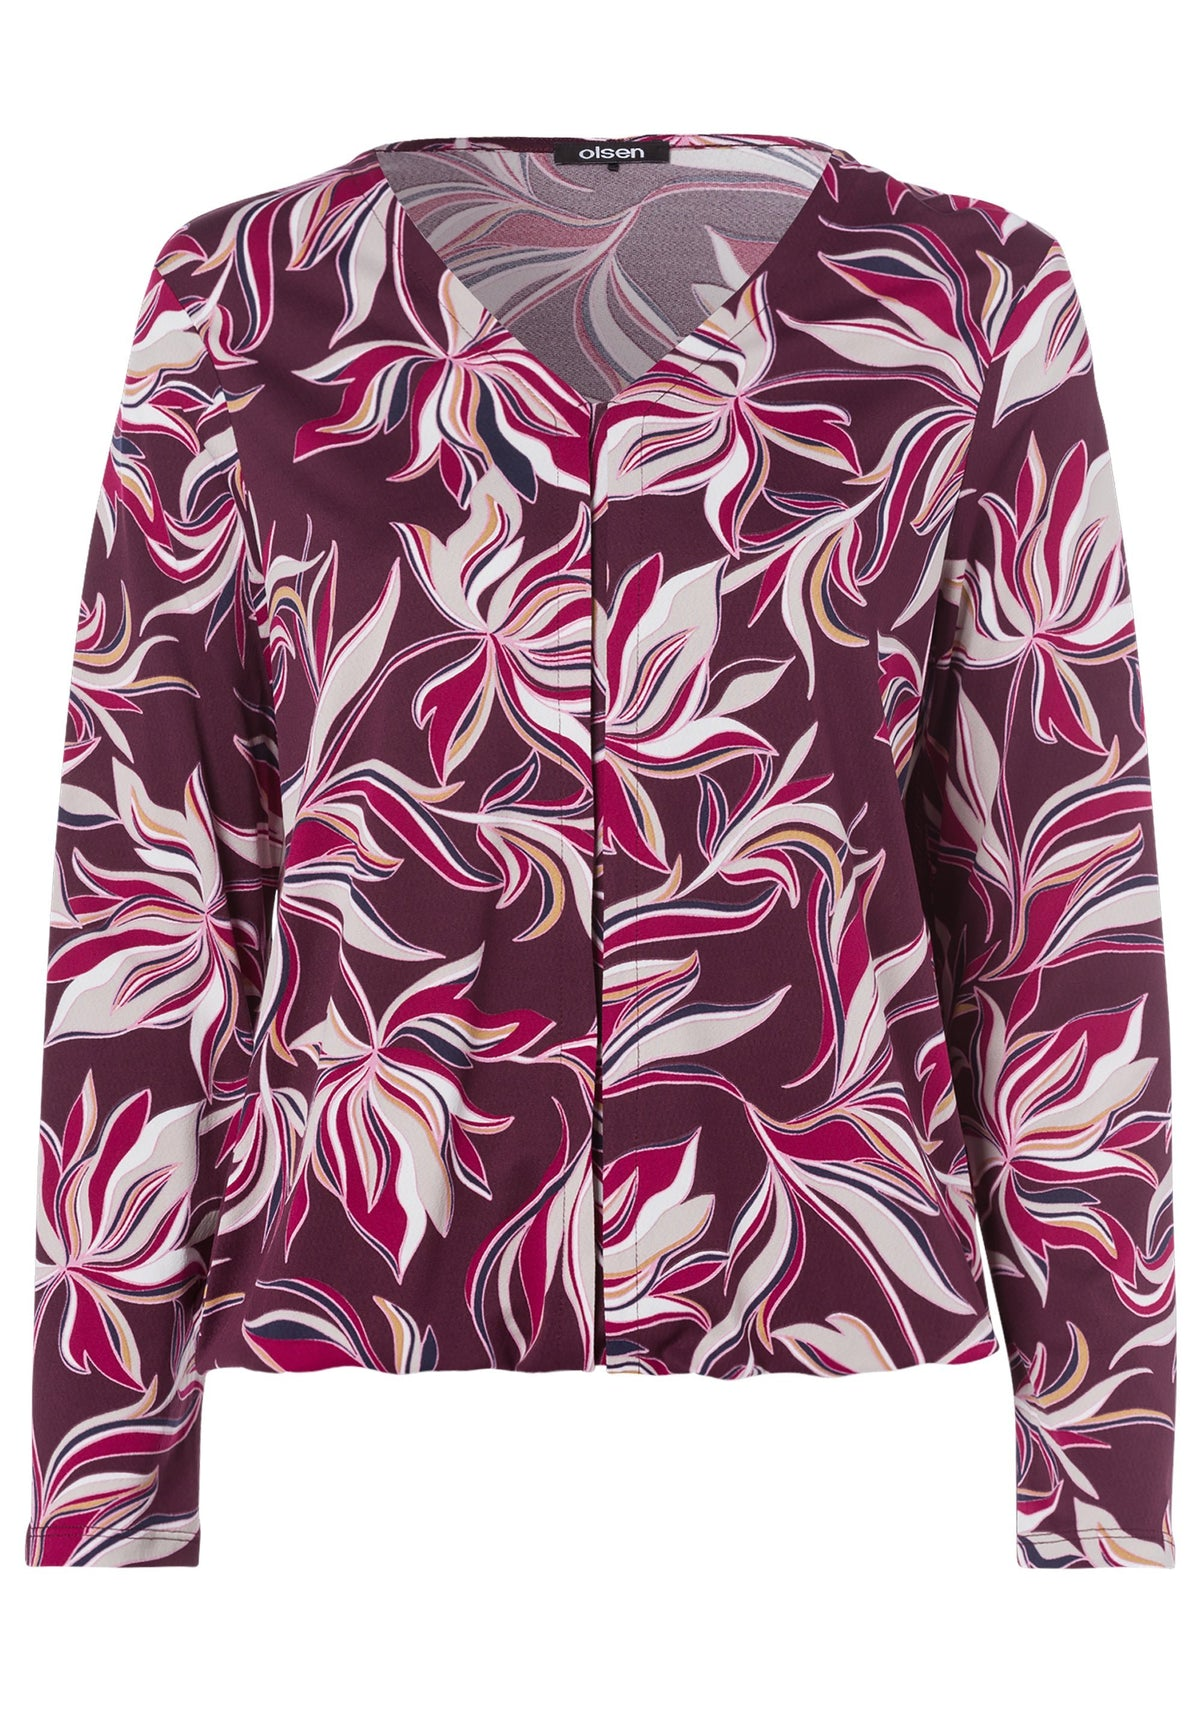 Long Sleeve Abstract Floral Print V-Neck Top with Front Pintuck Detail & Elasticized Hem